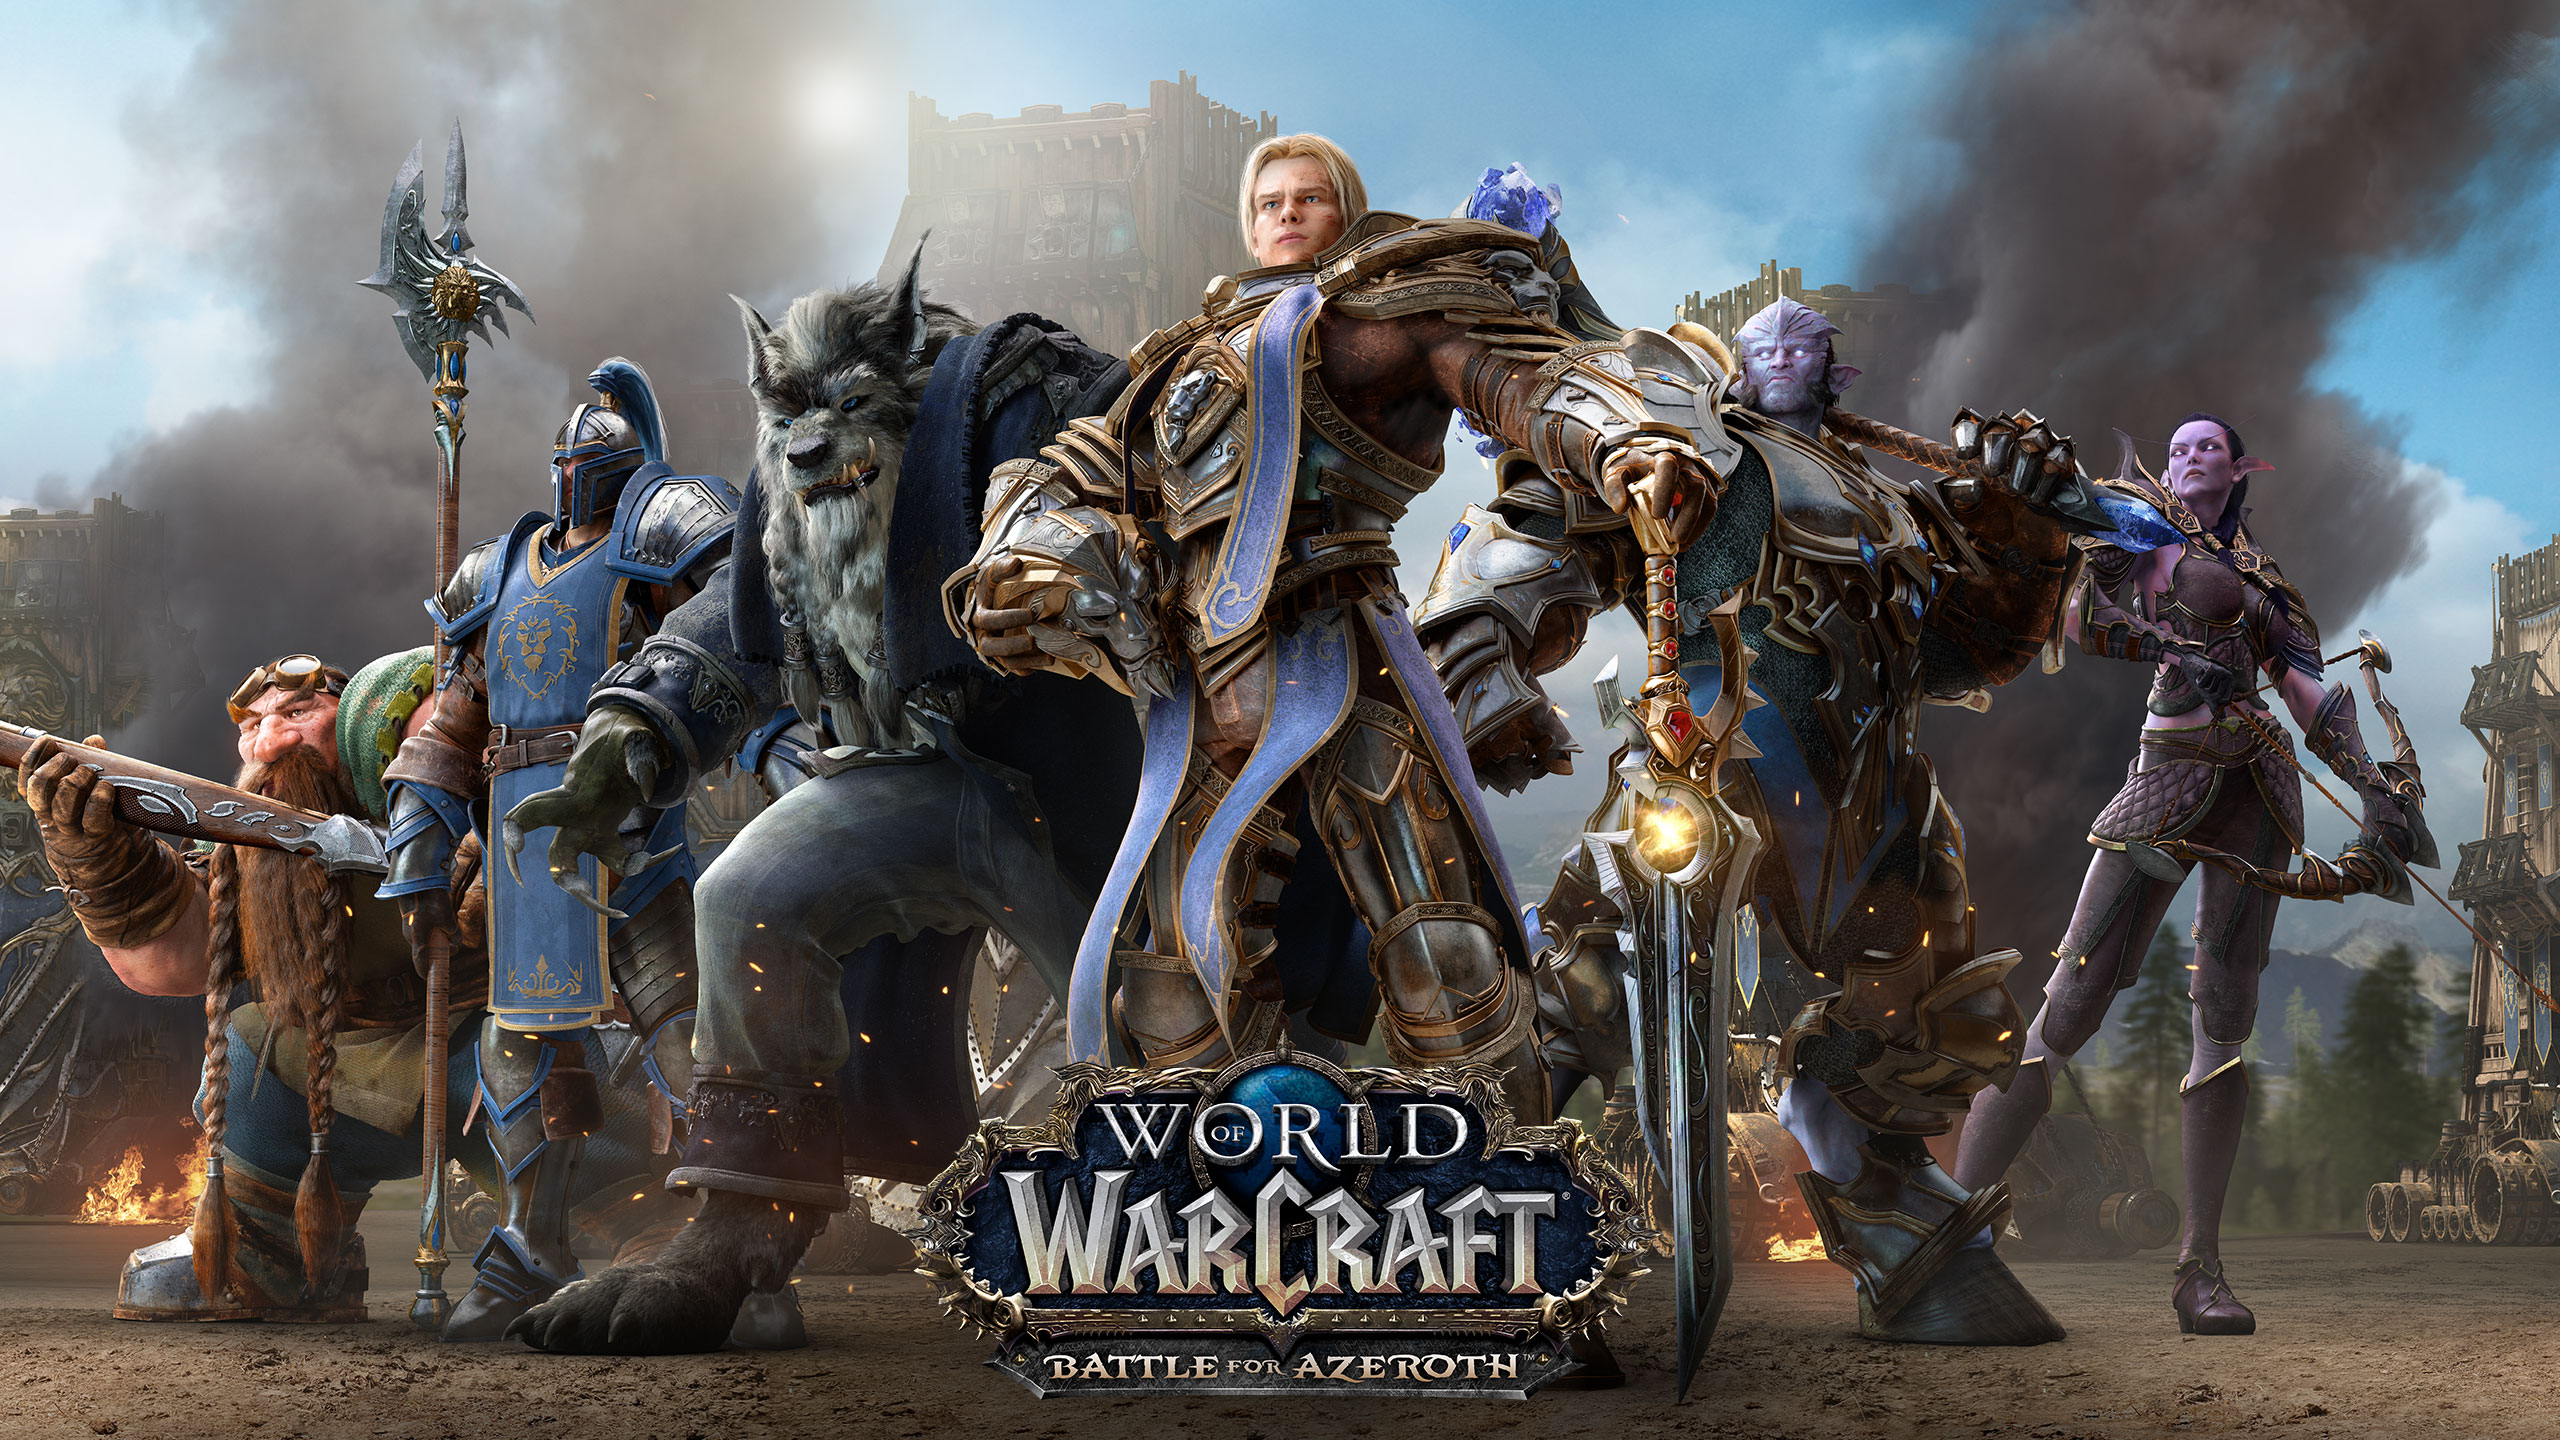 World of Warcraft: Battle for Azeroth pre-patch is live